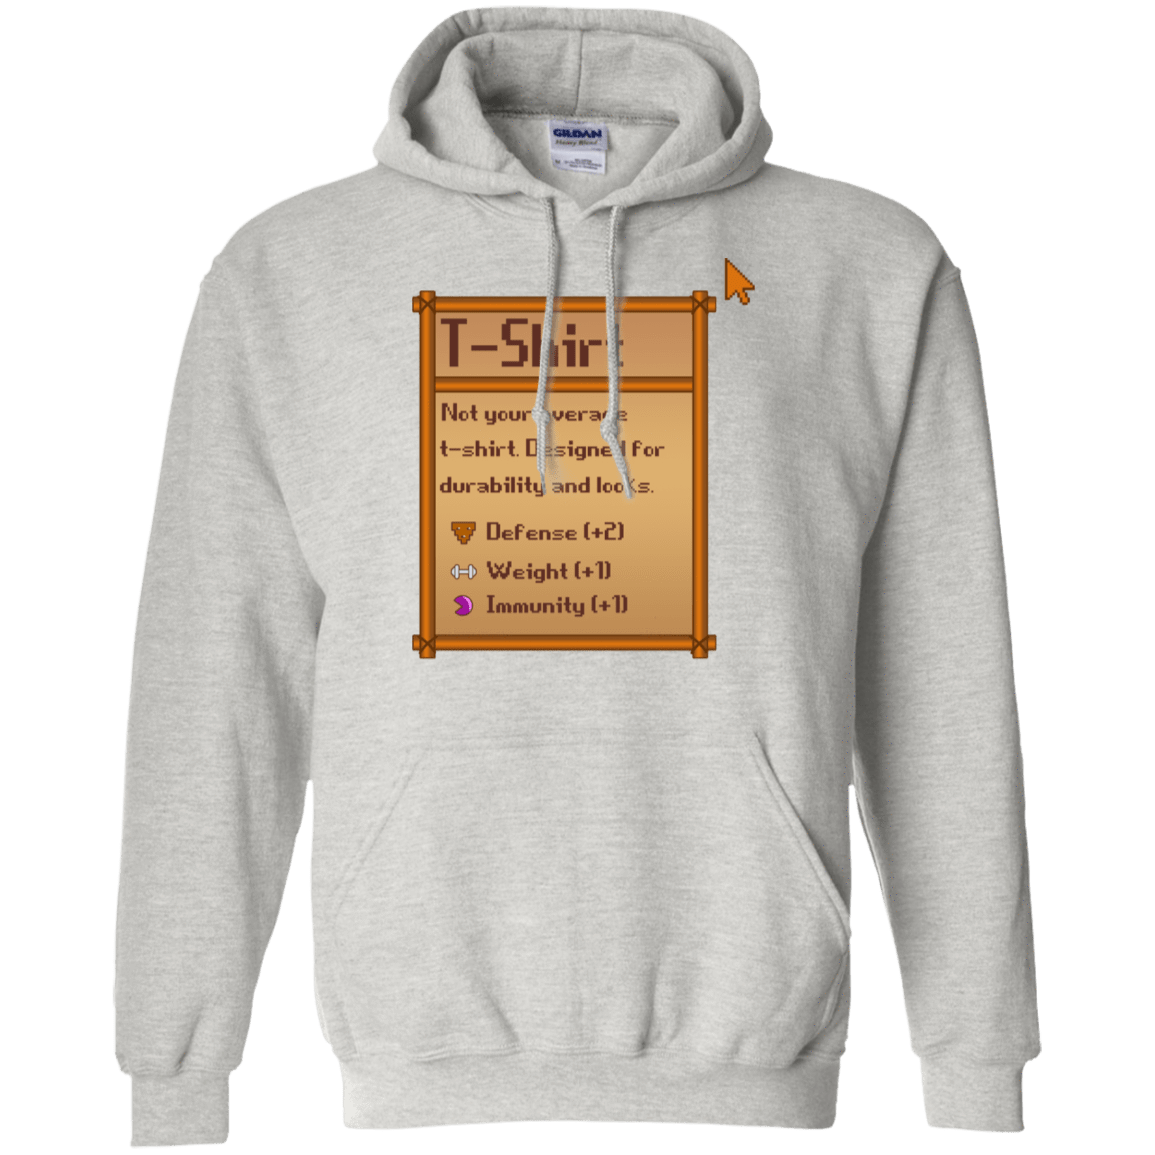 Stardew Valley T-Shirt 541-4748-72955965-23071 - Tee Ript